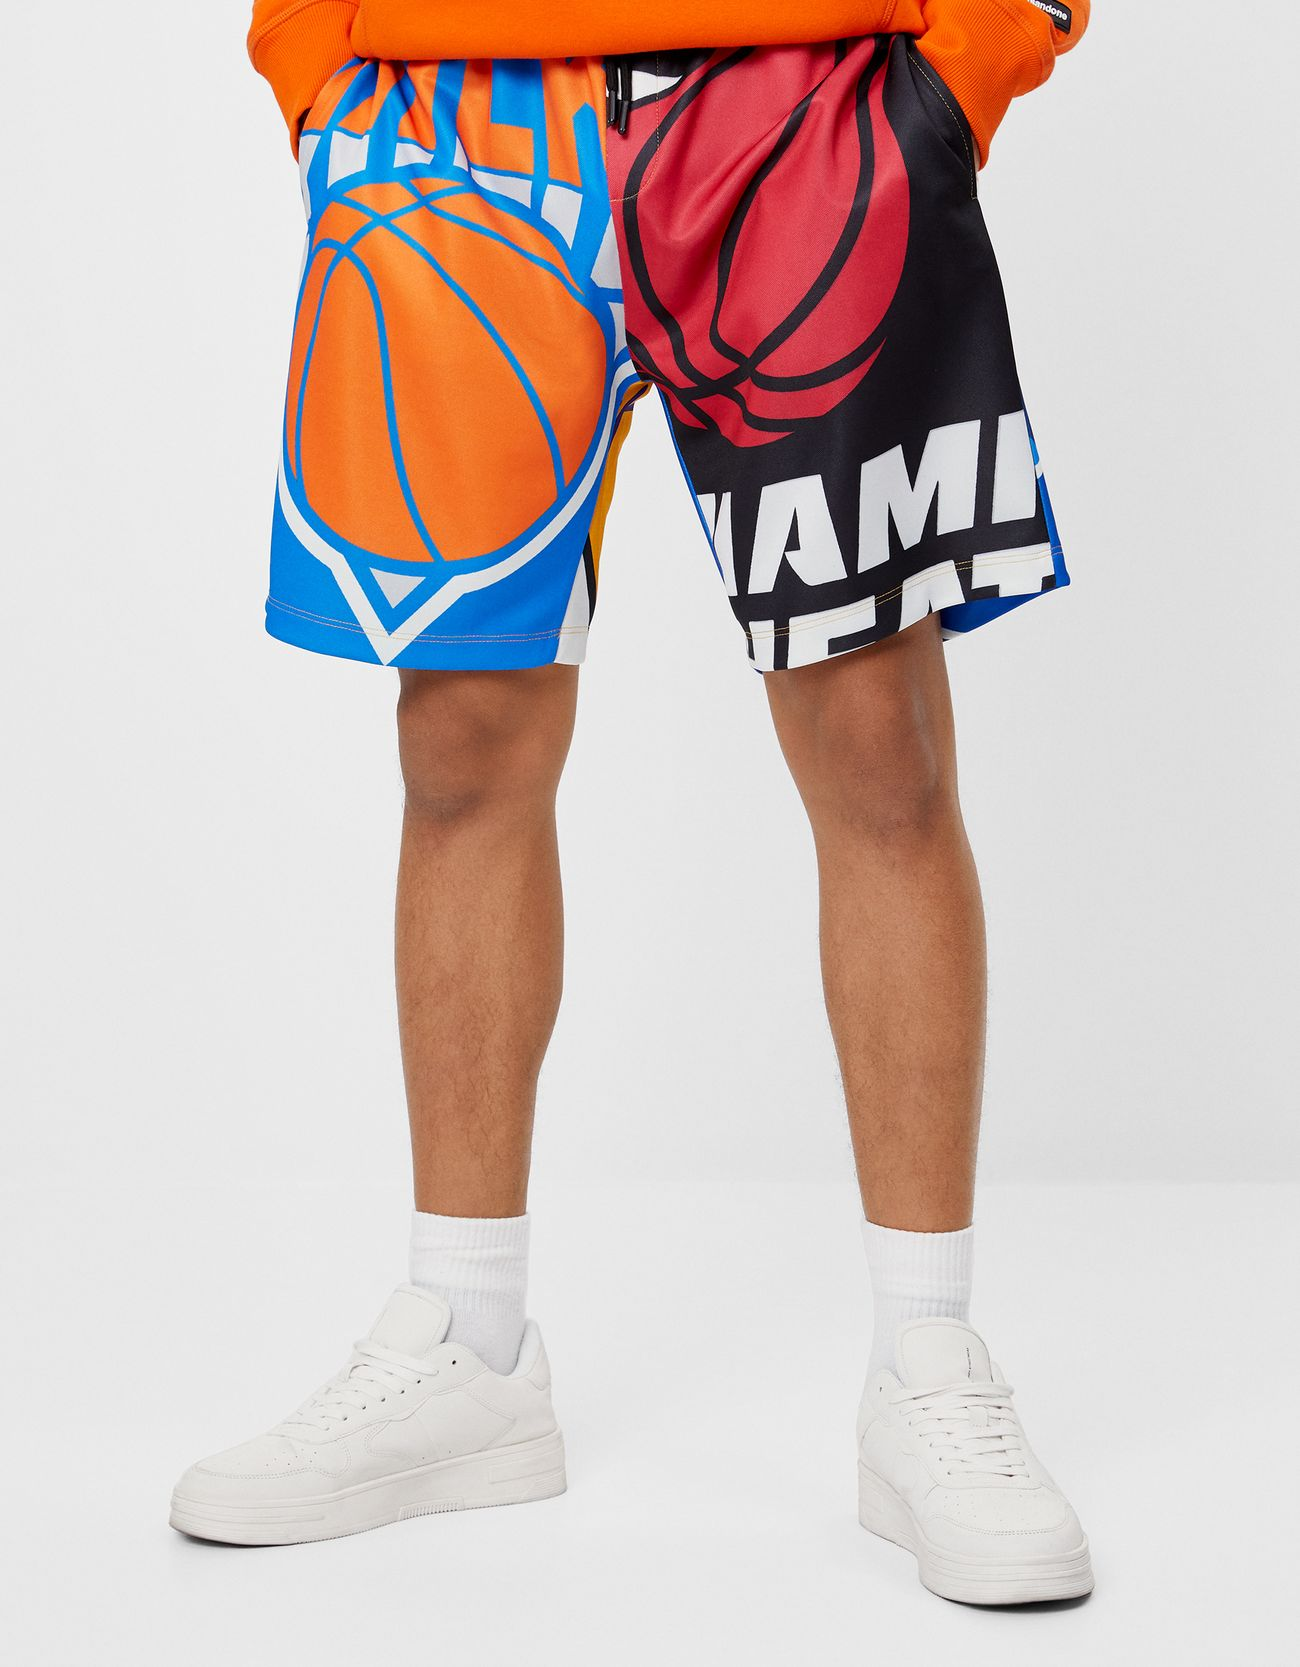 Nba Bermuda Jogging Shorts Join Life Bershka Turkey